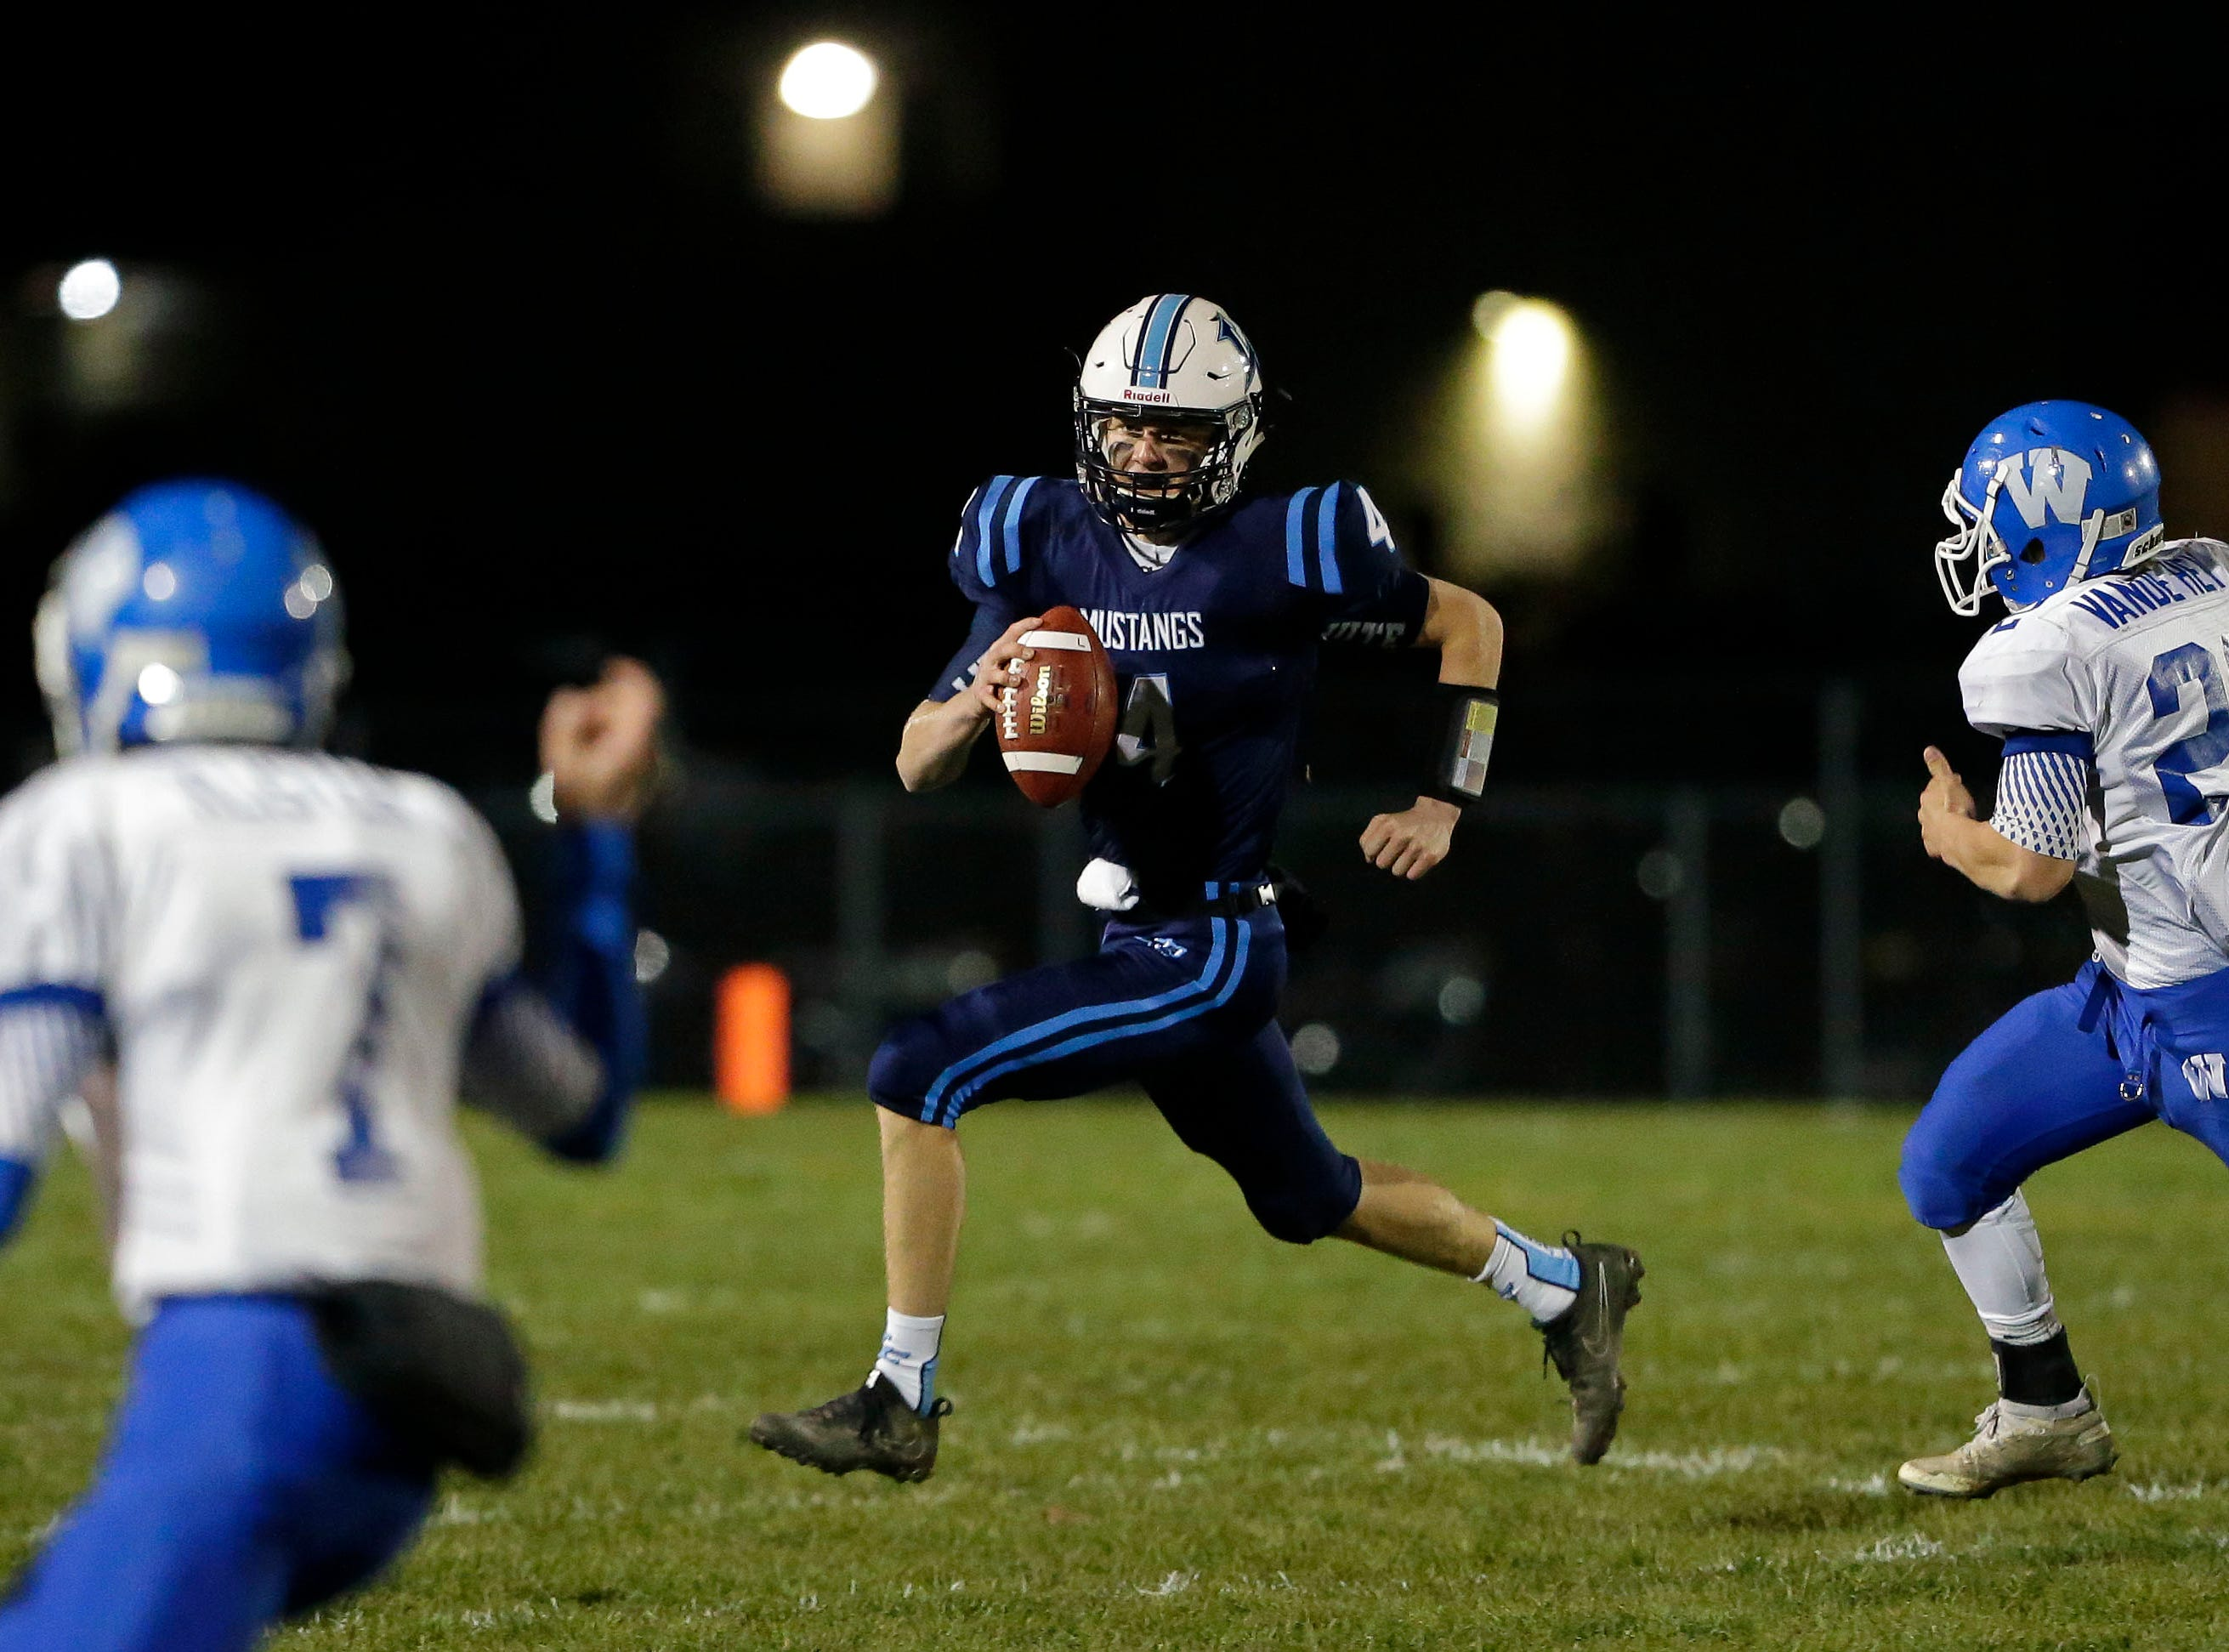 Noah Mueller of Little Chute is pursued by the defense of Wrightstown in a WIAA Division 4 Level 3 playoff game Friday, November 2, 2018, at Fitzpatrick Field in Little Chute, Wis.Ron Page/USA TODAY NETWORK-Wisconsin